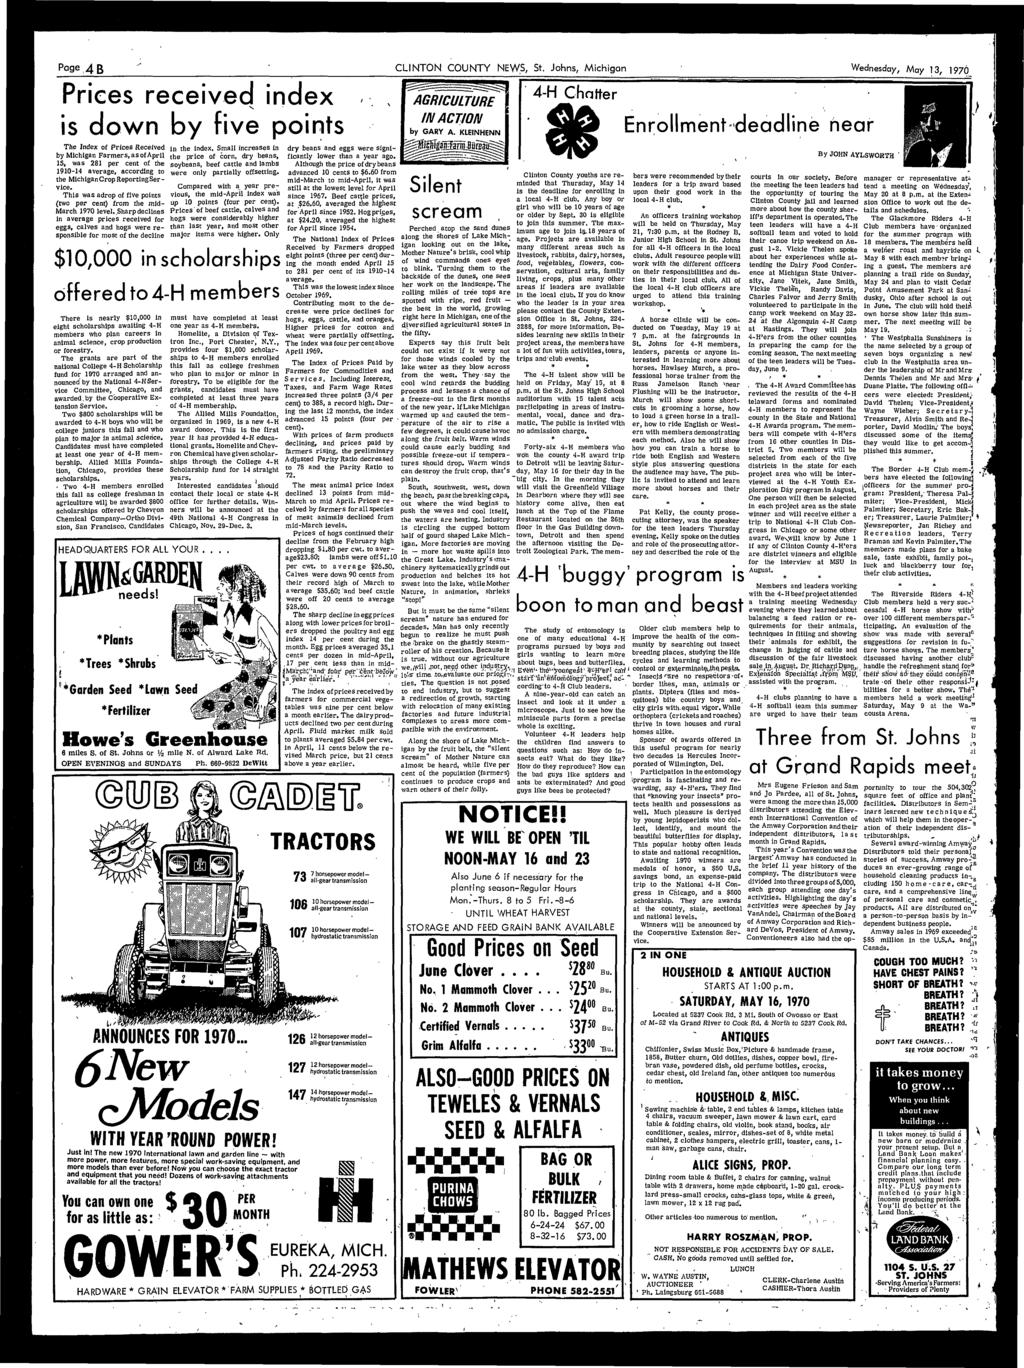 Page, 4 B CLINTON COUNTY NEWS, St, Johns, Michigan Wednesday, May, 1970 Prices received index is down by five points The Index of Prices Received by Michigan Farmers, as of April IS, was 281 per cent